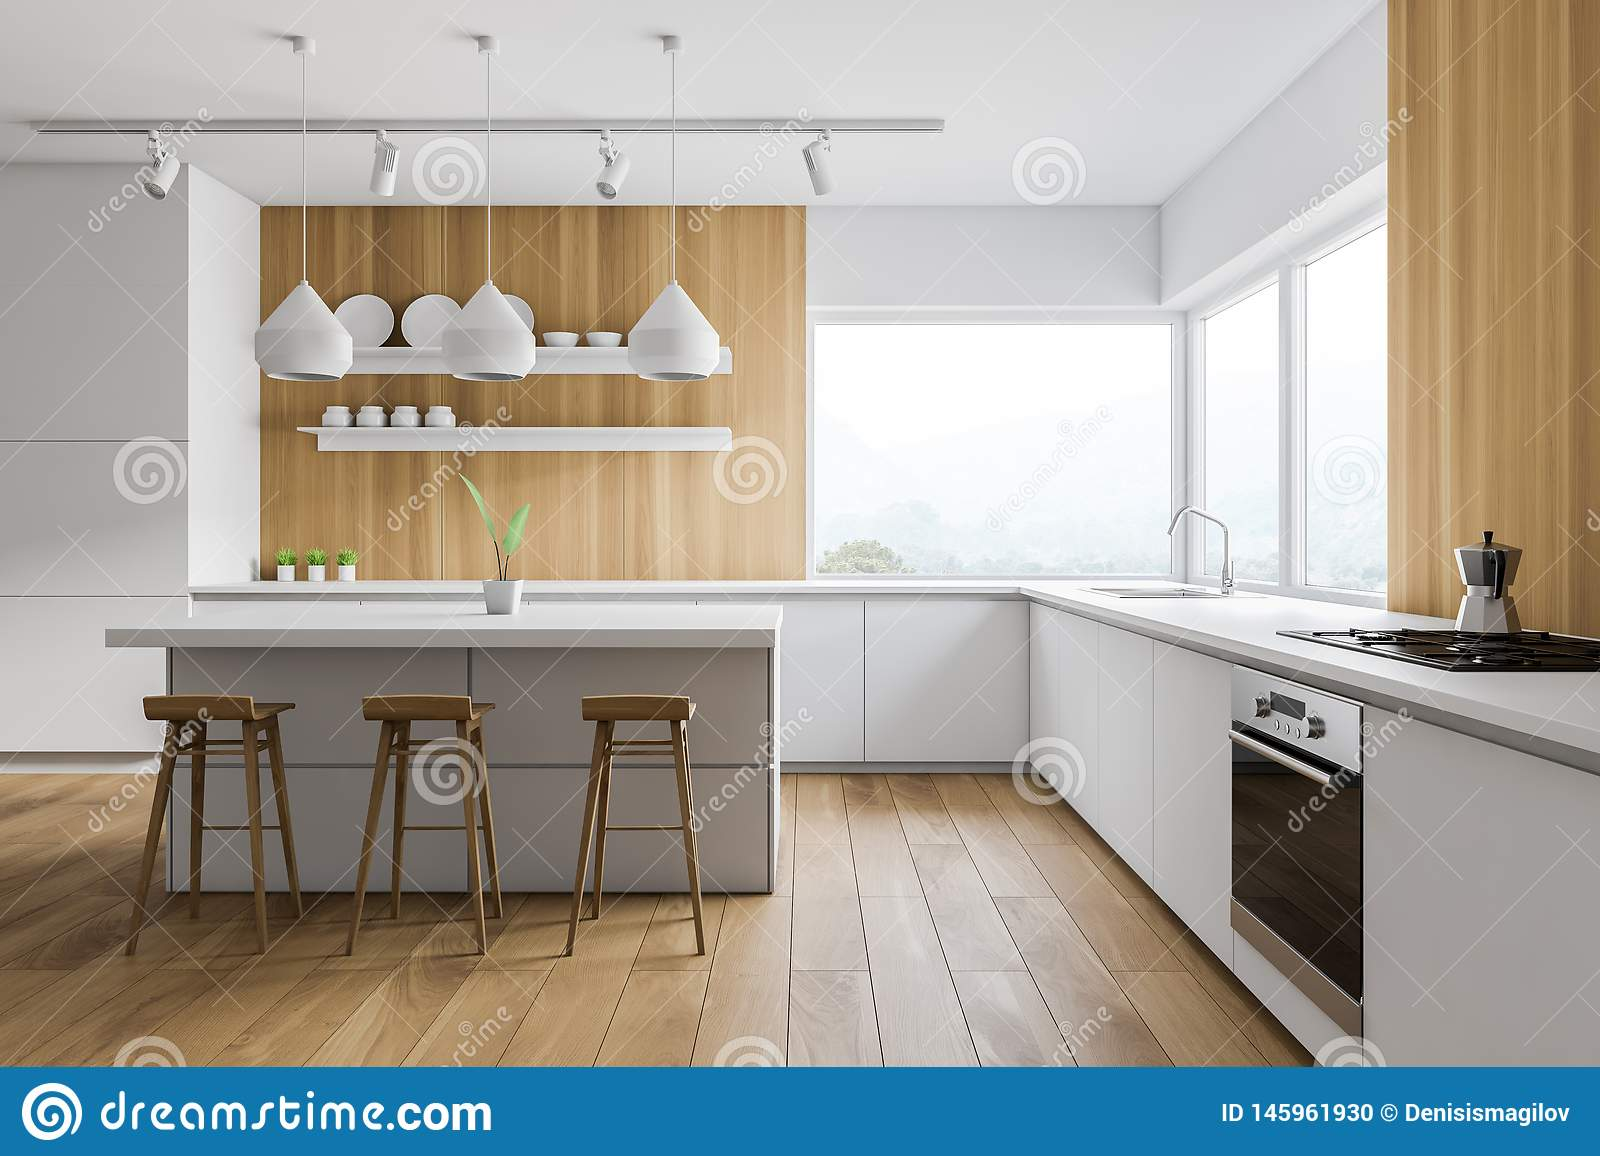 Enjoyable White And Wooden Kitchen Bar And Stools Stock Illustration Alphanode Cool Chair Designs And Ideas Alphanodeonline